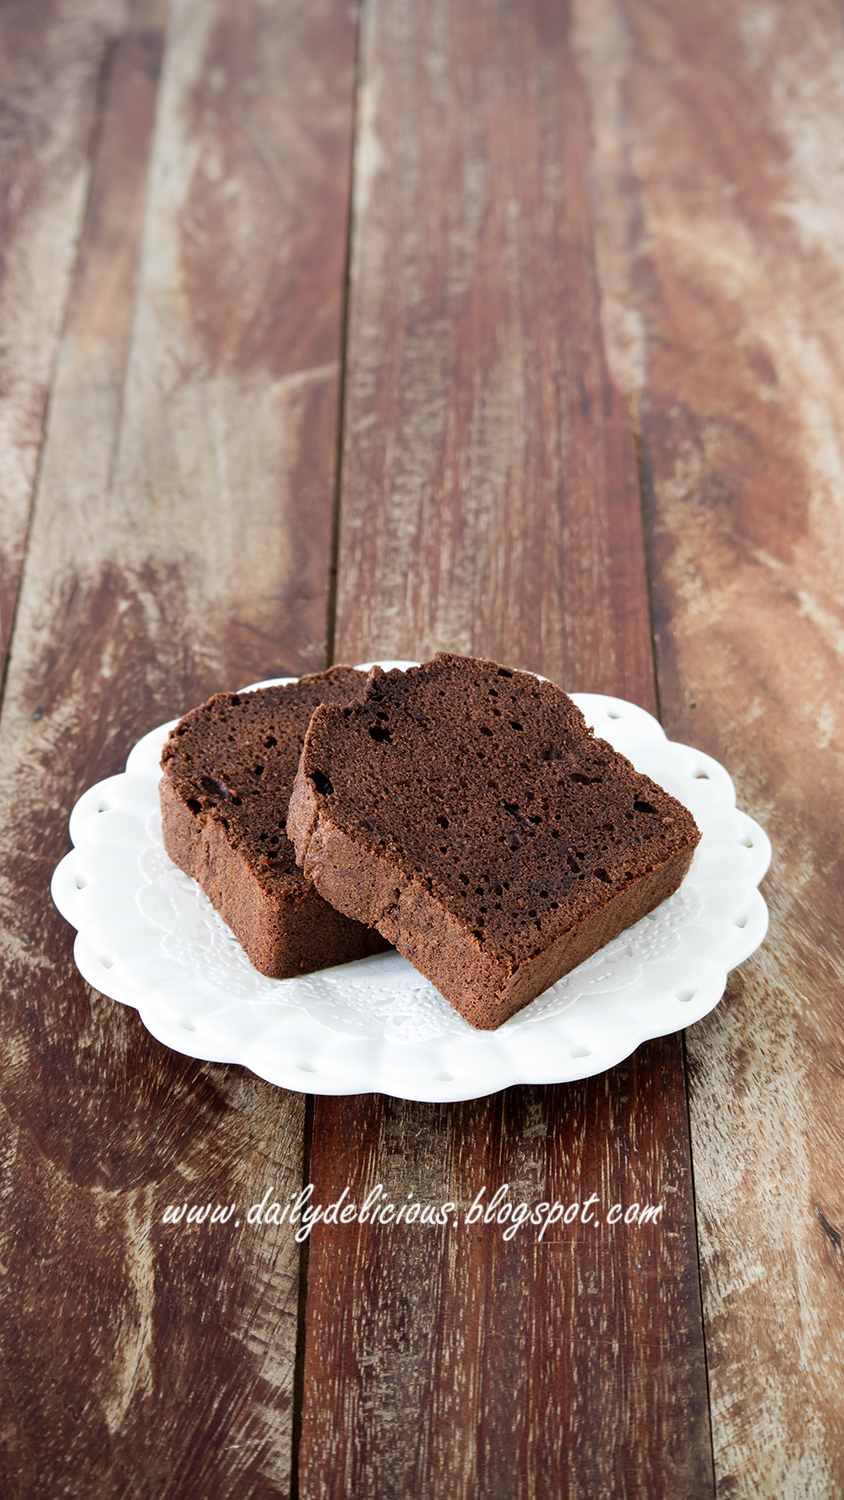 dailydelicious: Chocolate Pound Cake